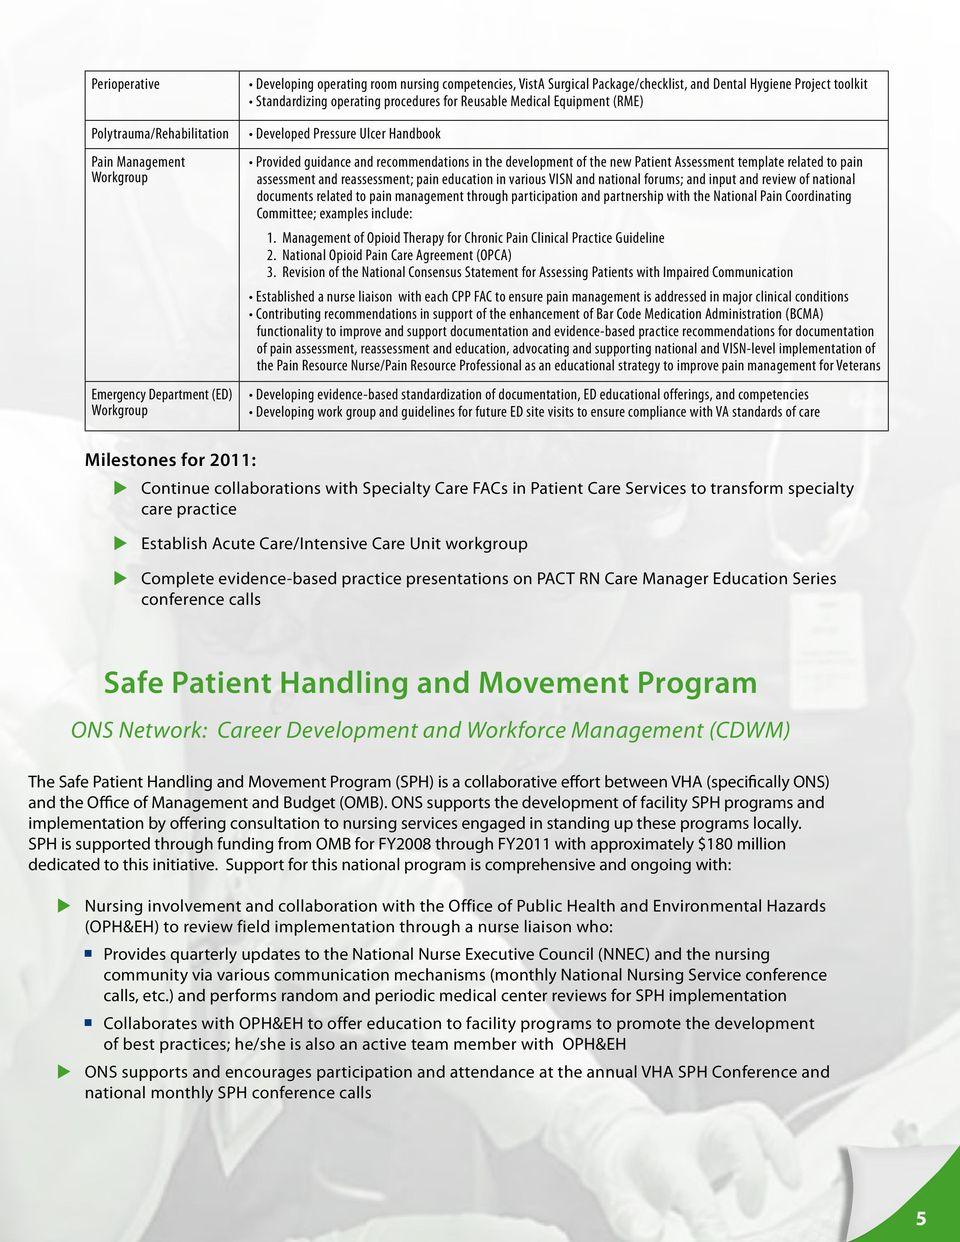 Patient Assessment template related to pain assessment and reassessment; pain education in various VISN and national forums; and input and review of national documents related to pain management